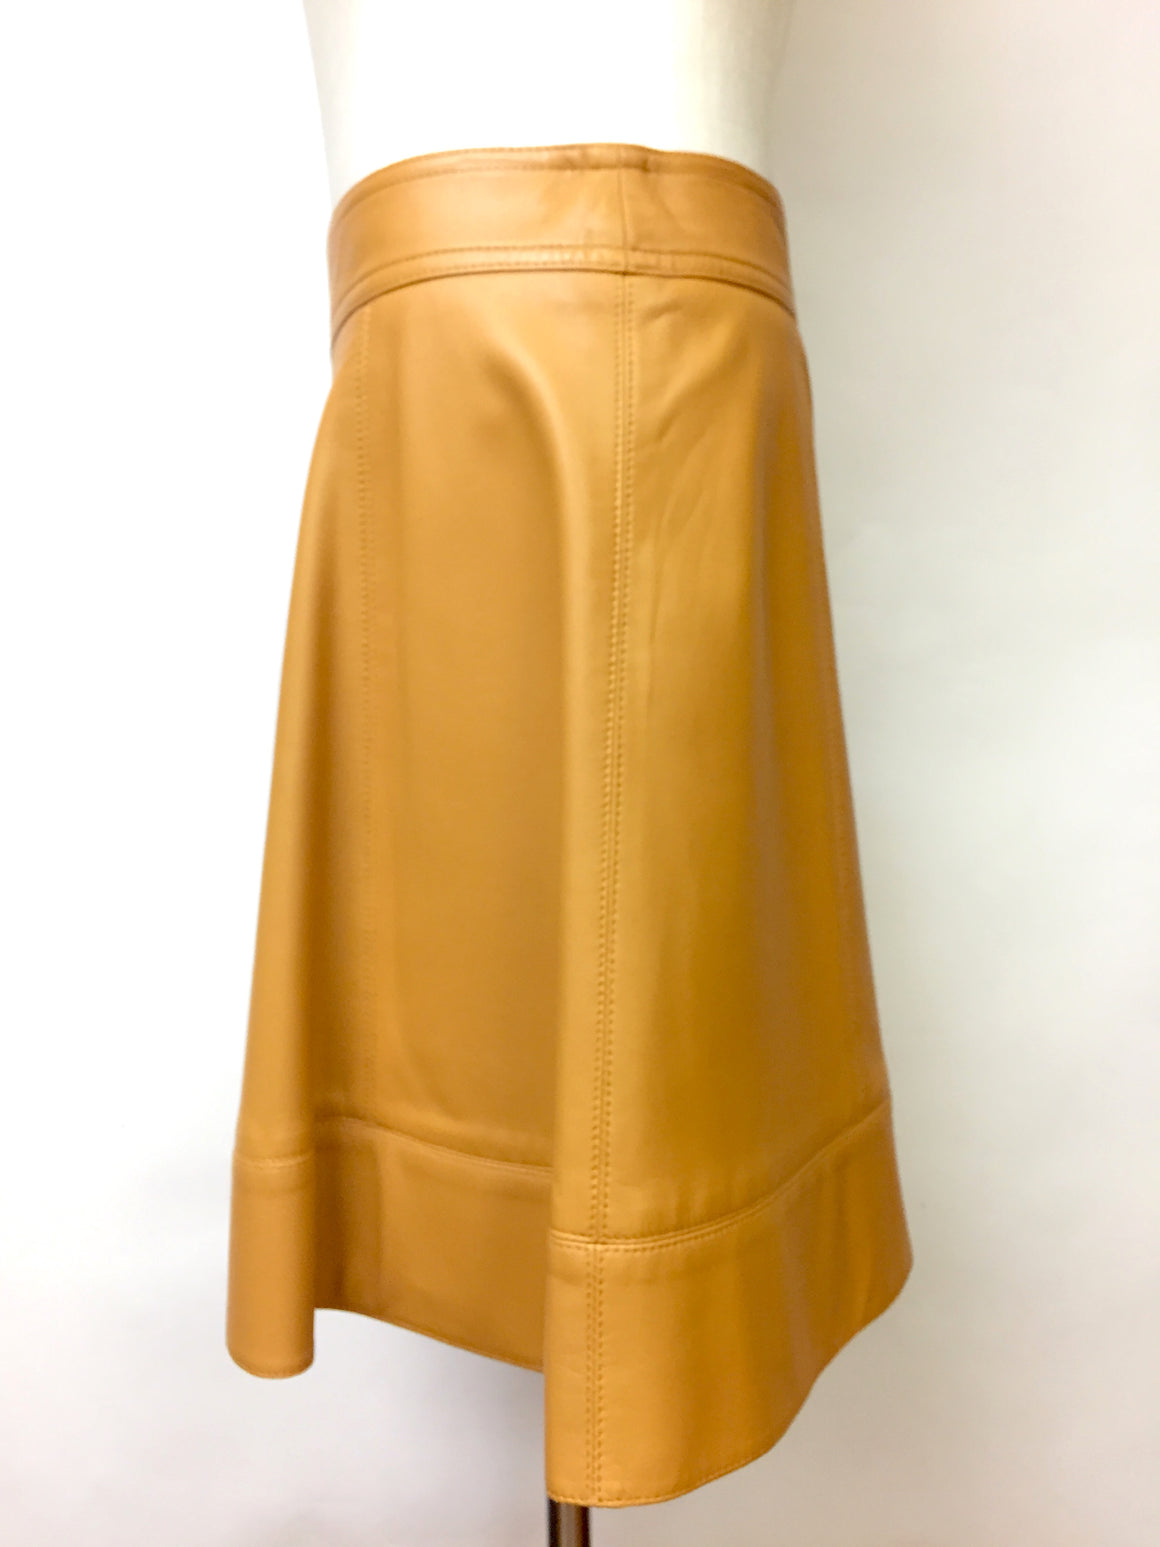 MICHAEL KORS COLLECTION New Golden-Amber Leather Above-Knee Flare Skirt  Size: US 6